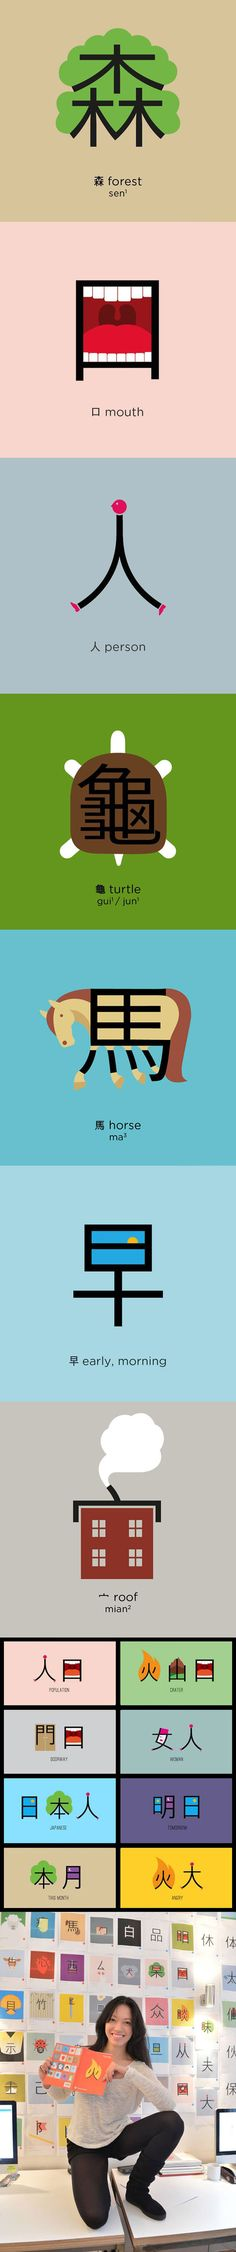 Playful illustrations make it easy to learn Chinese... - The Meta Picture